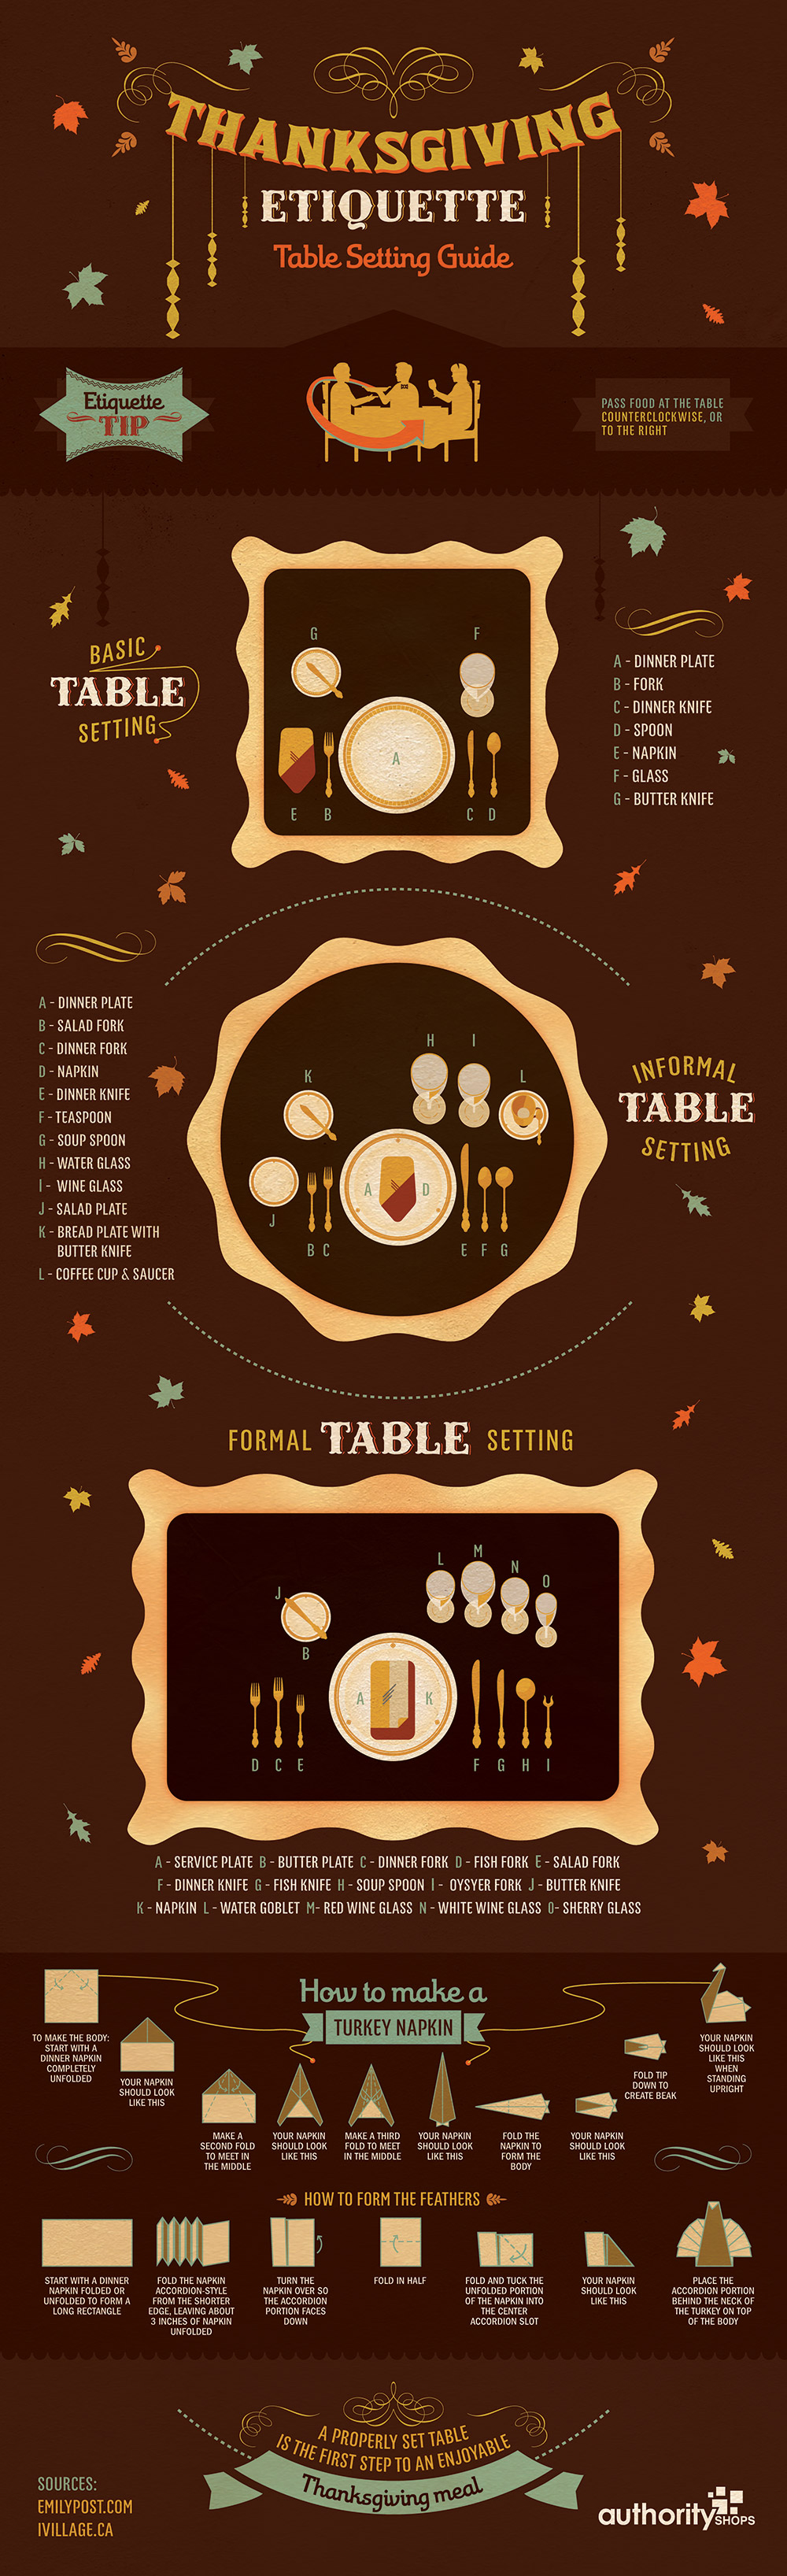 Thanksgiving Etiquette